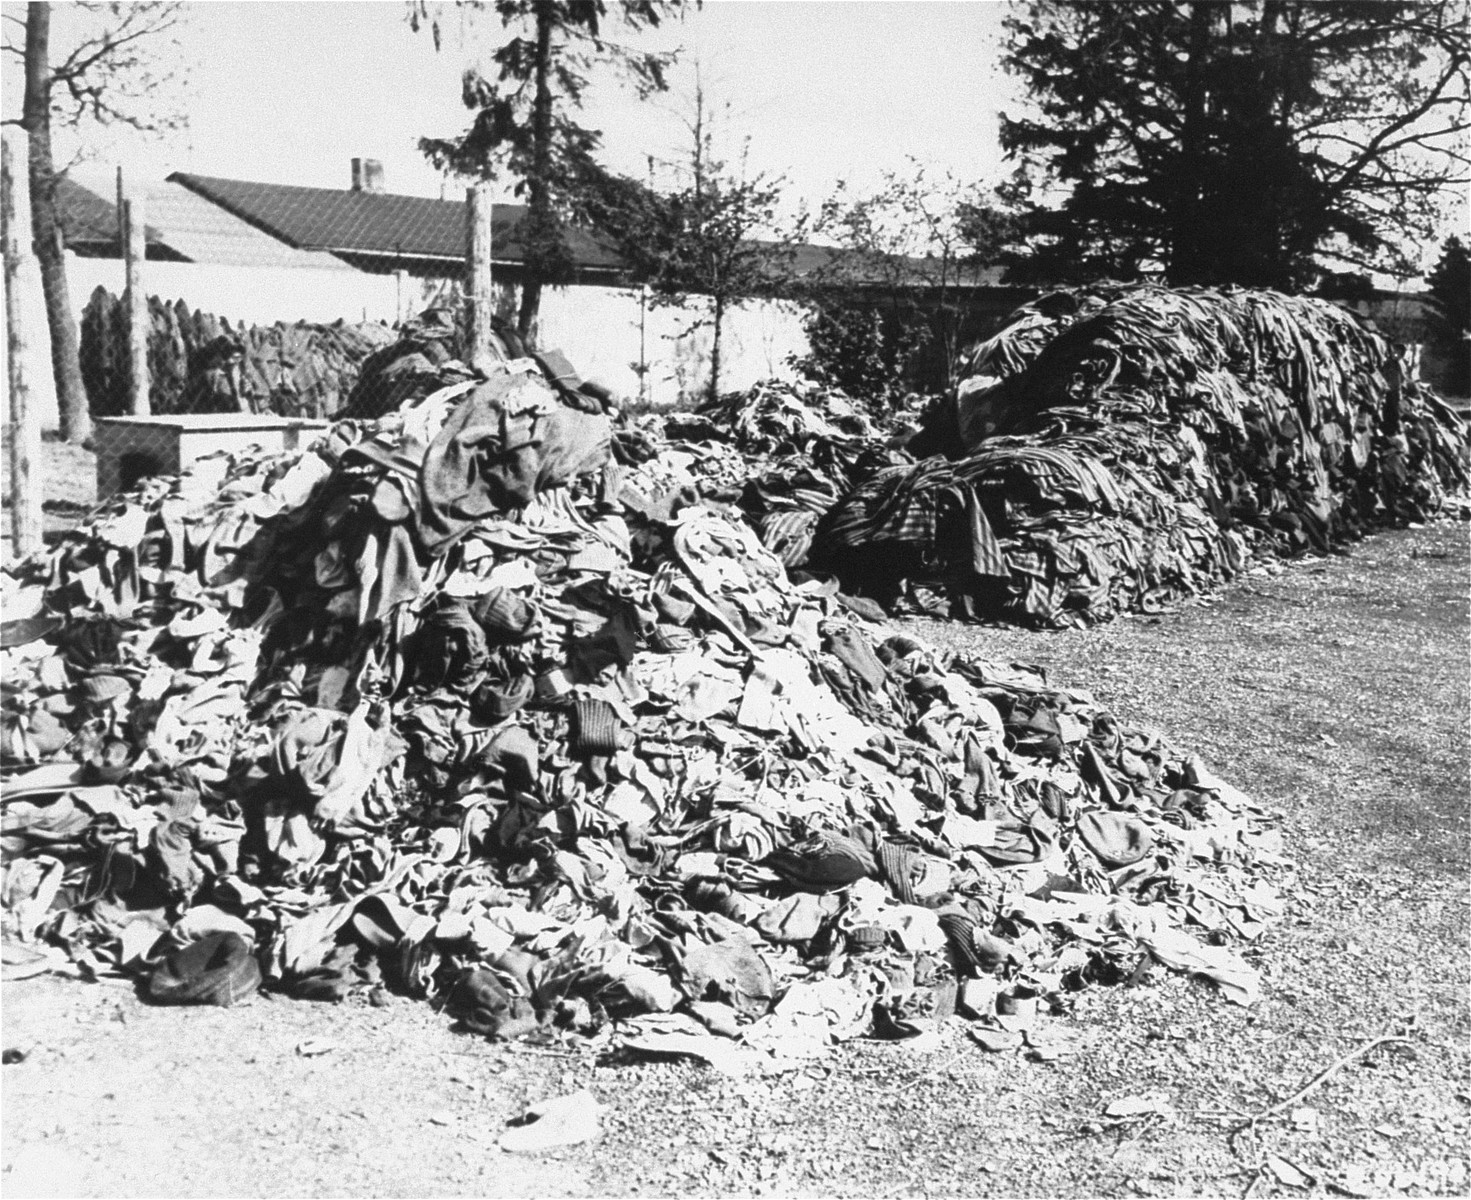 Prisoners' clothing is piled outside at the newly liberated Dachau concentration camp.